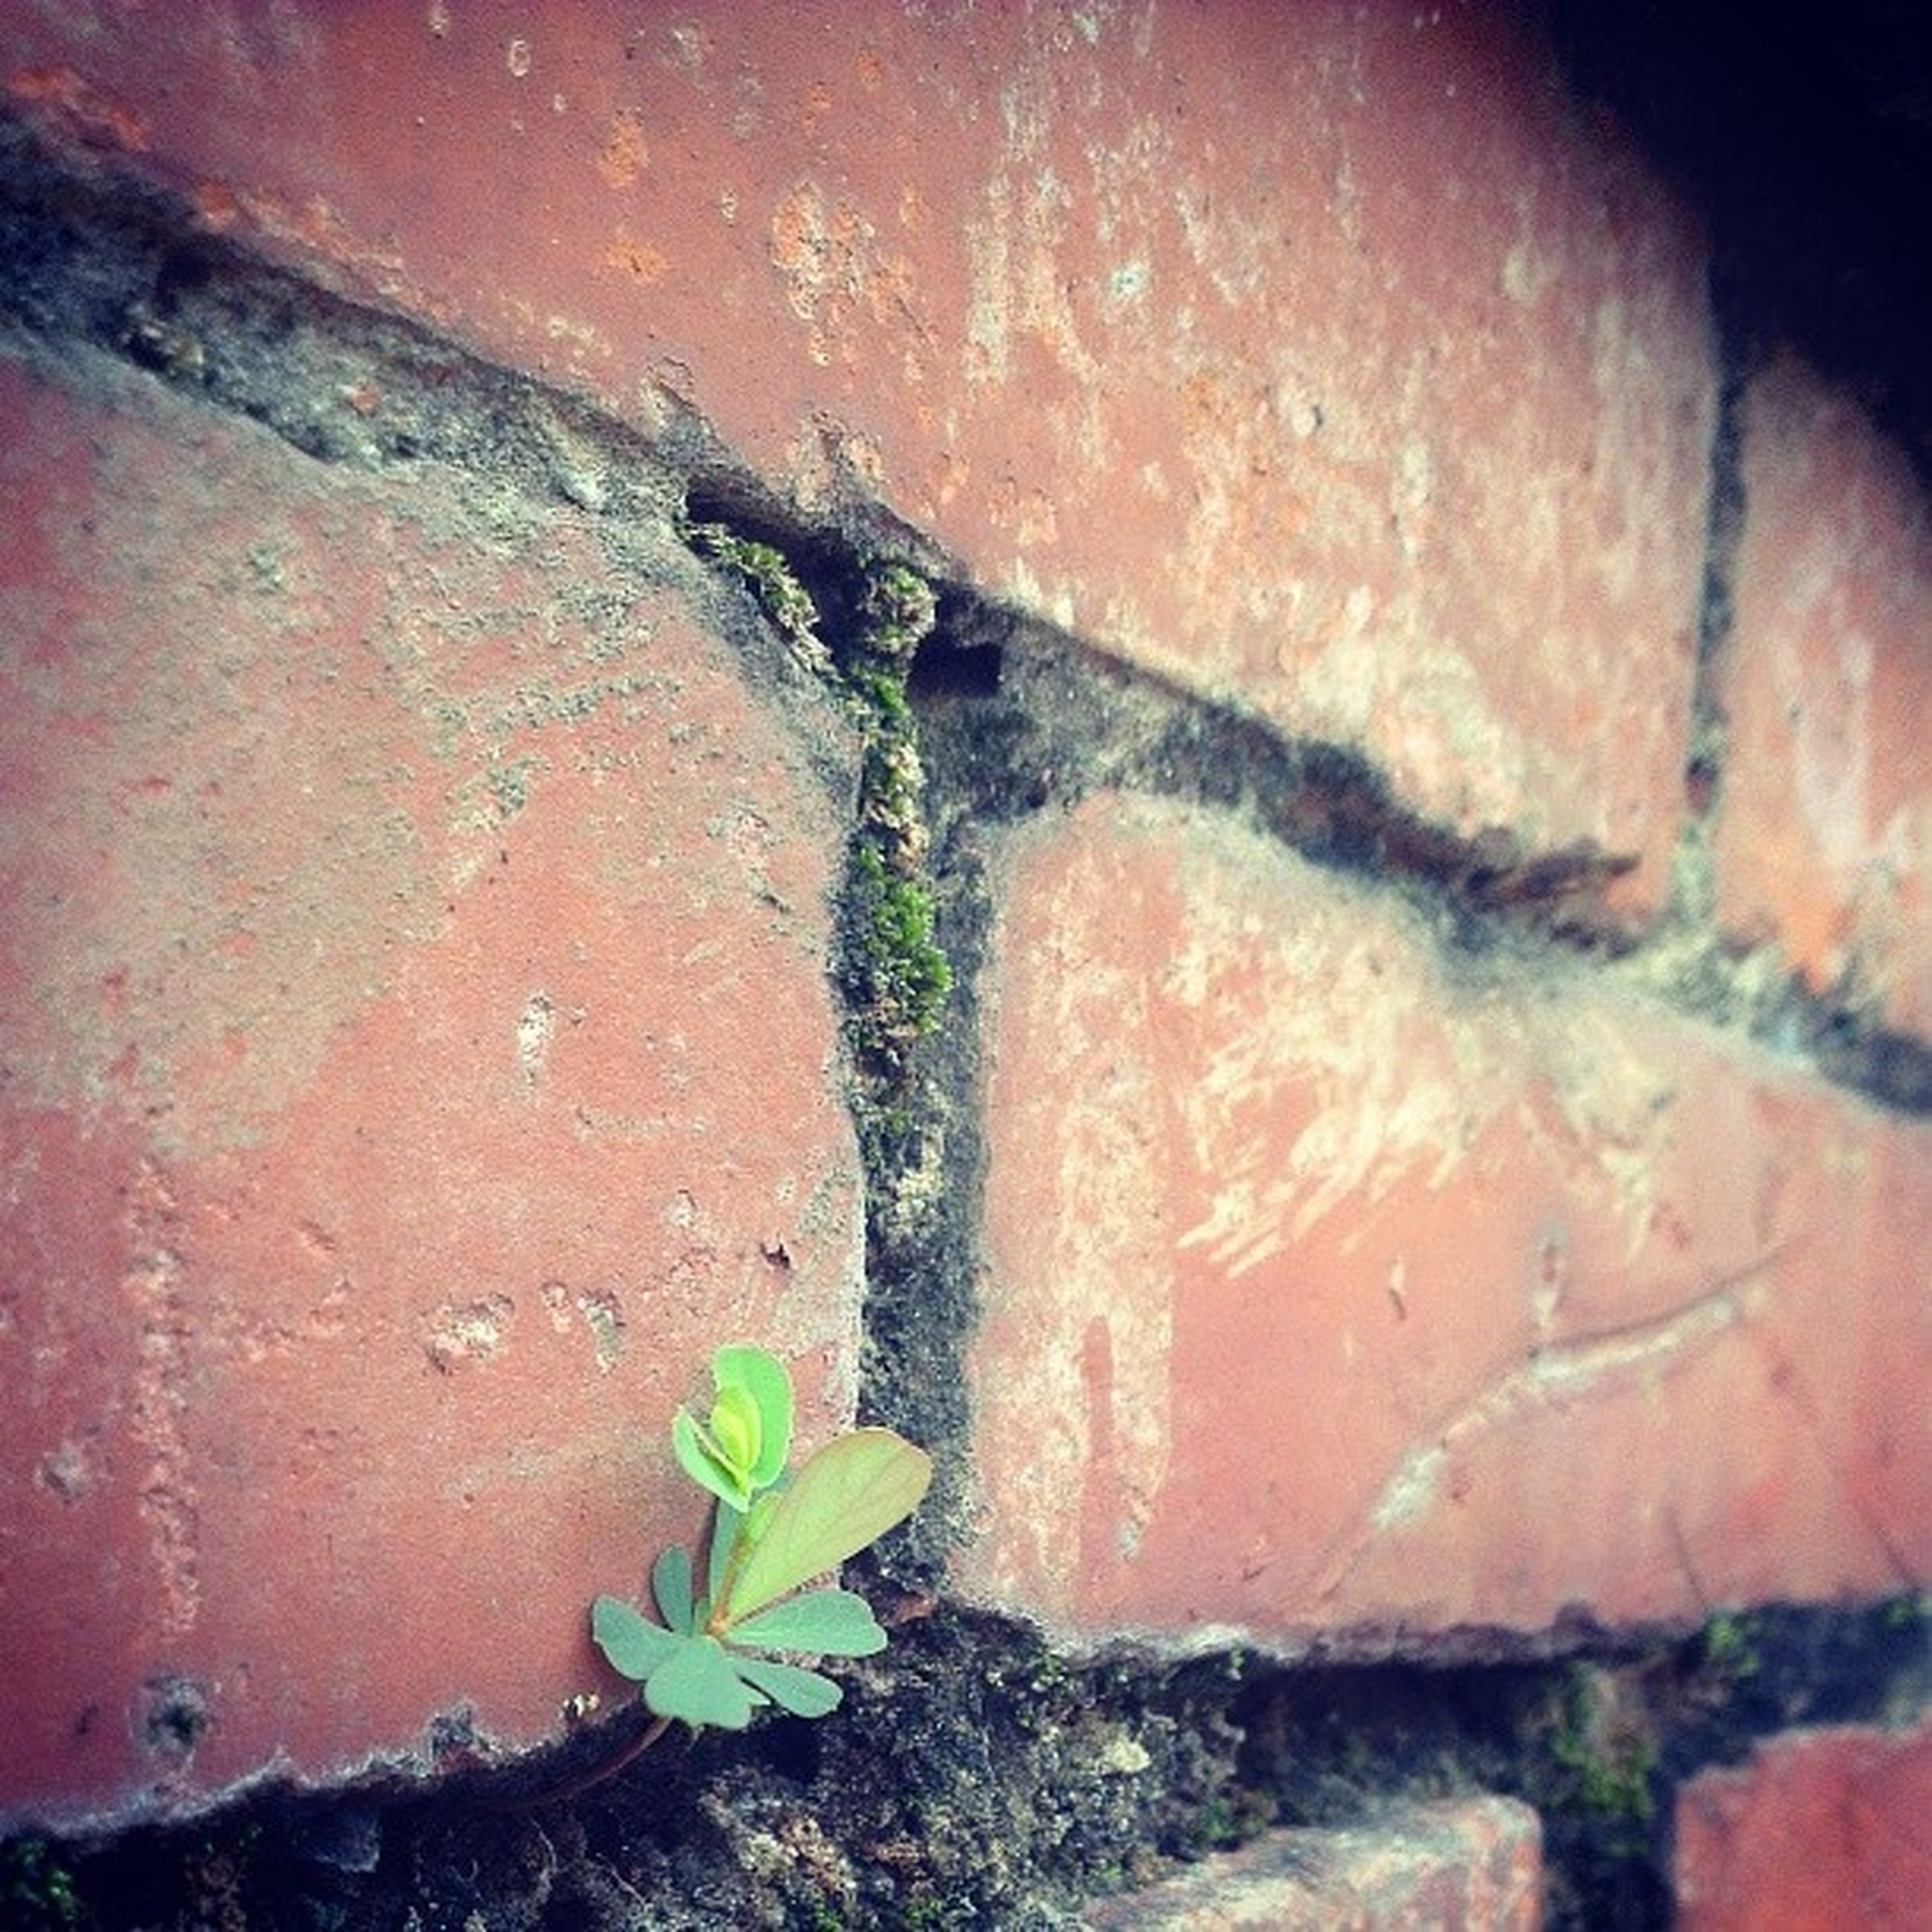 wall - building feature, weathered, built structure, architecture, old, plant, abandoned, damaged, deterioration, wall, run-down, bad condition, obsolete, close-up, brick wall, growth, building exterior, rusty, no people, leaf